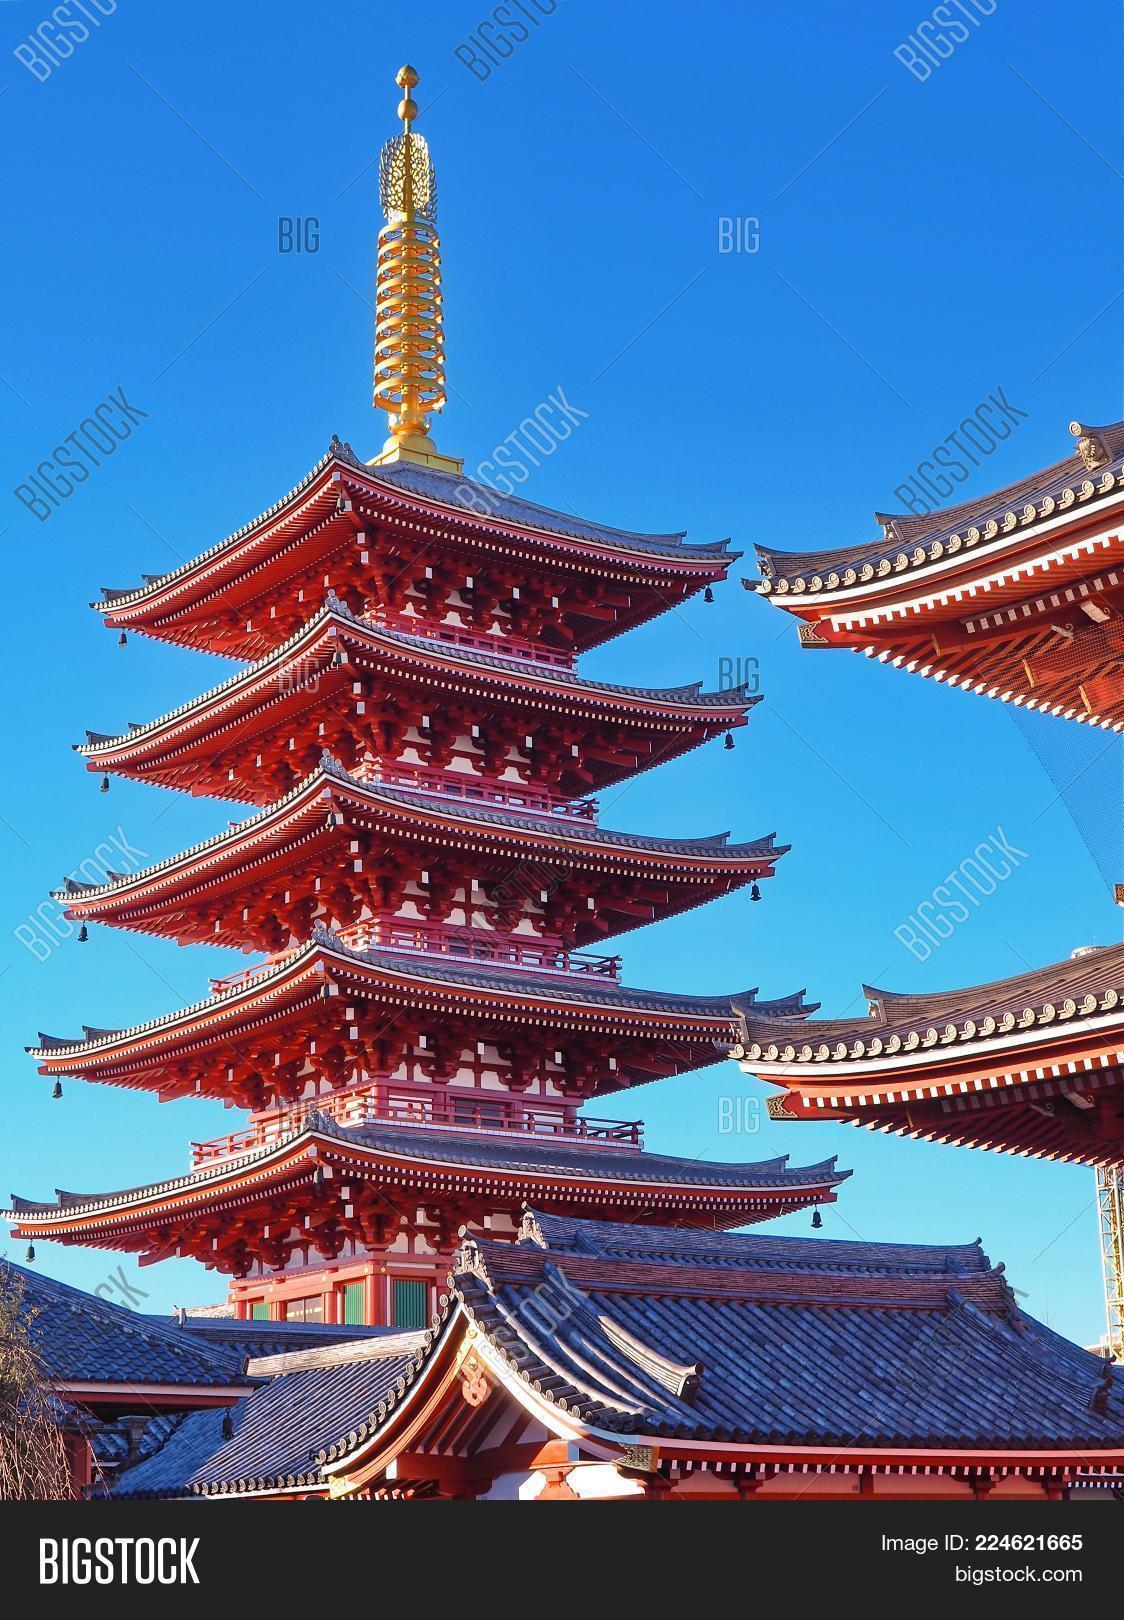 Red Pagoda Golden Image & Photo (Free Trial) | Bigstock